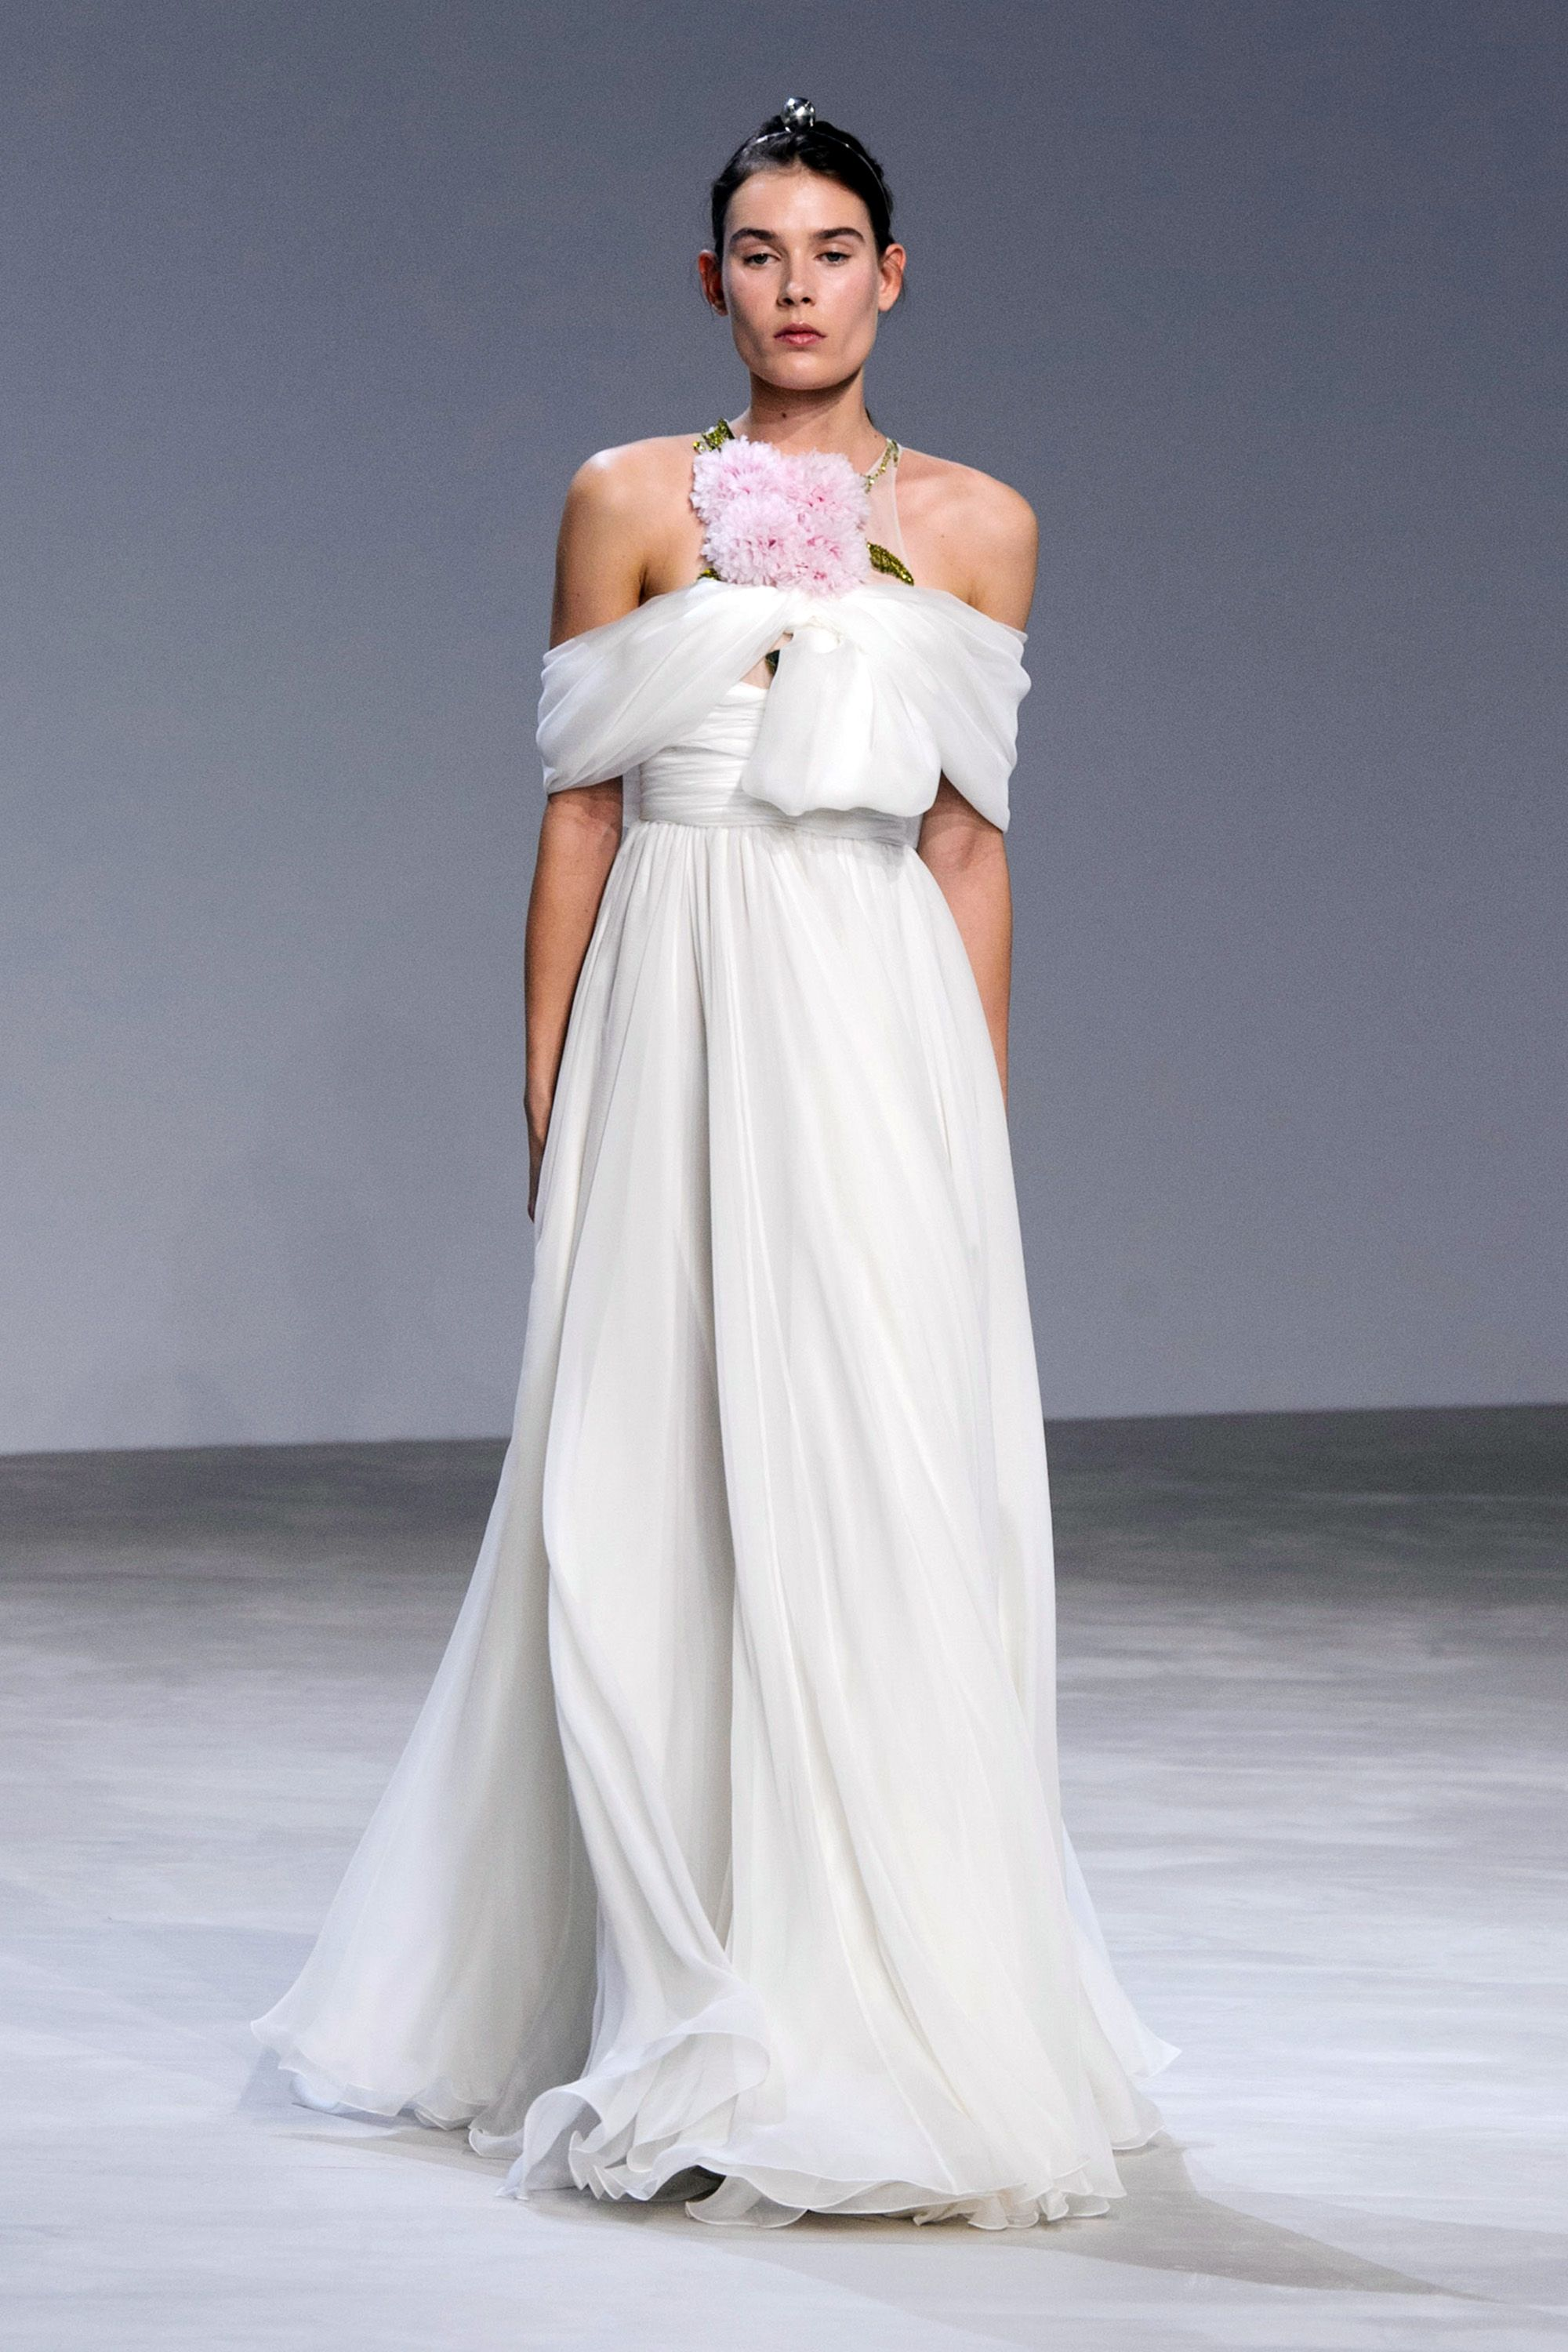 Bridal Inspiration from Haute Couture Spring 2016 - The Best Wedding ...